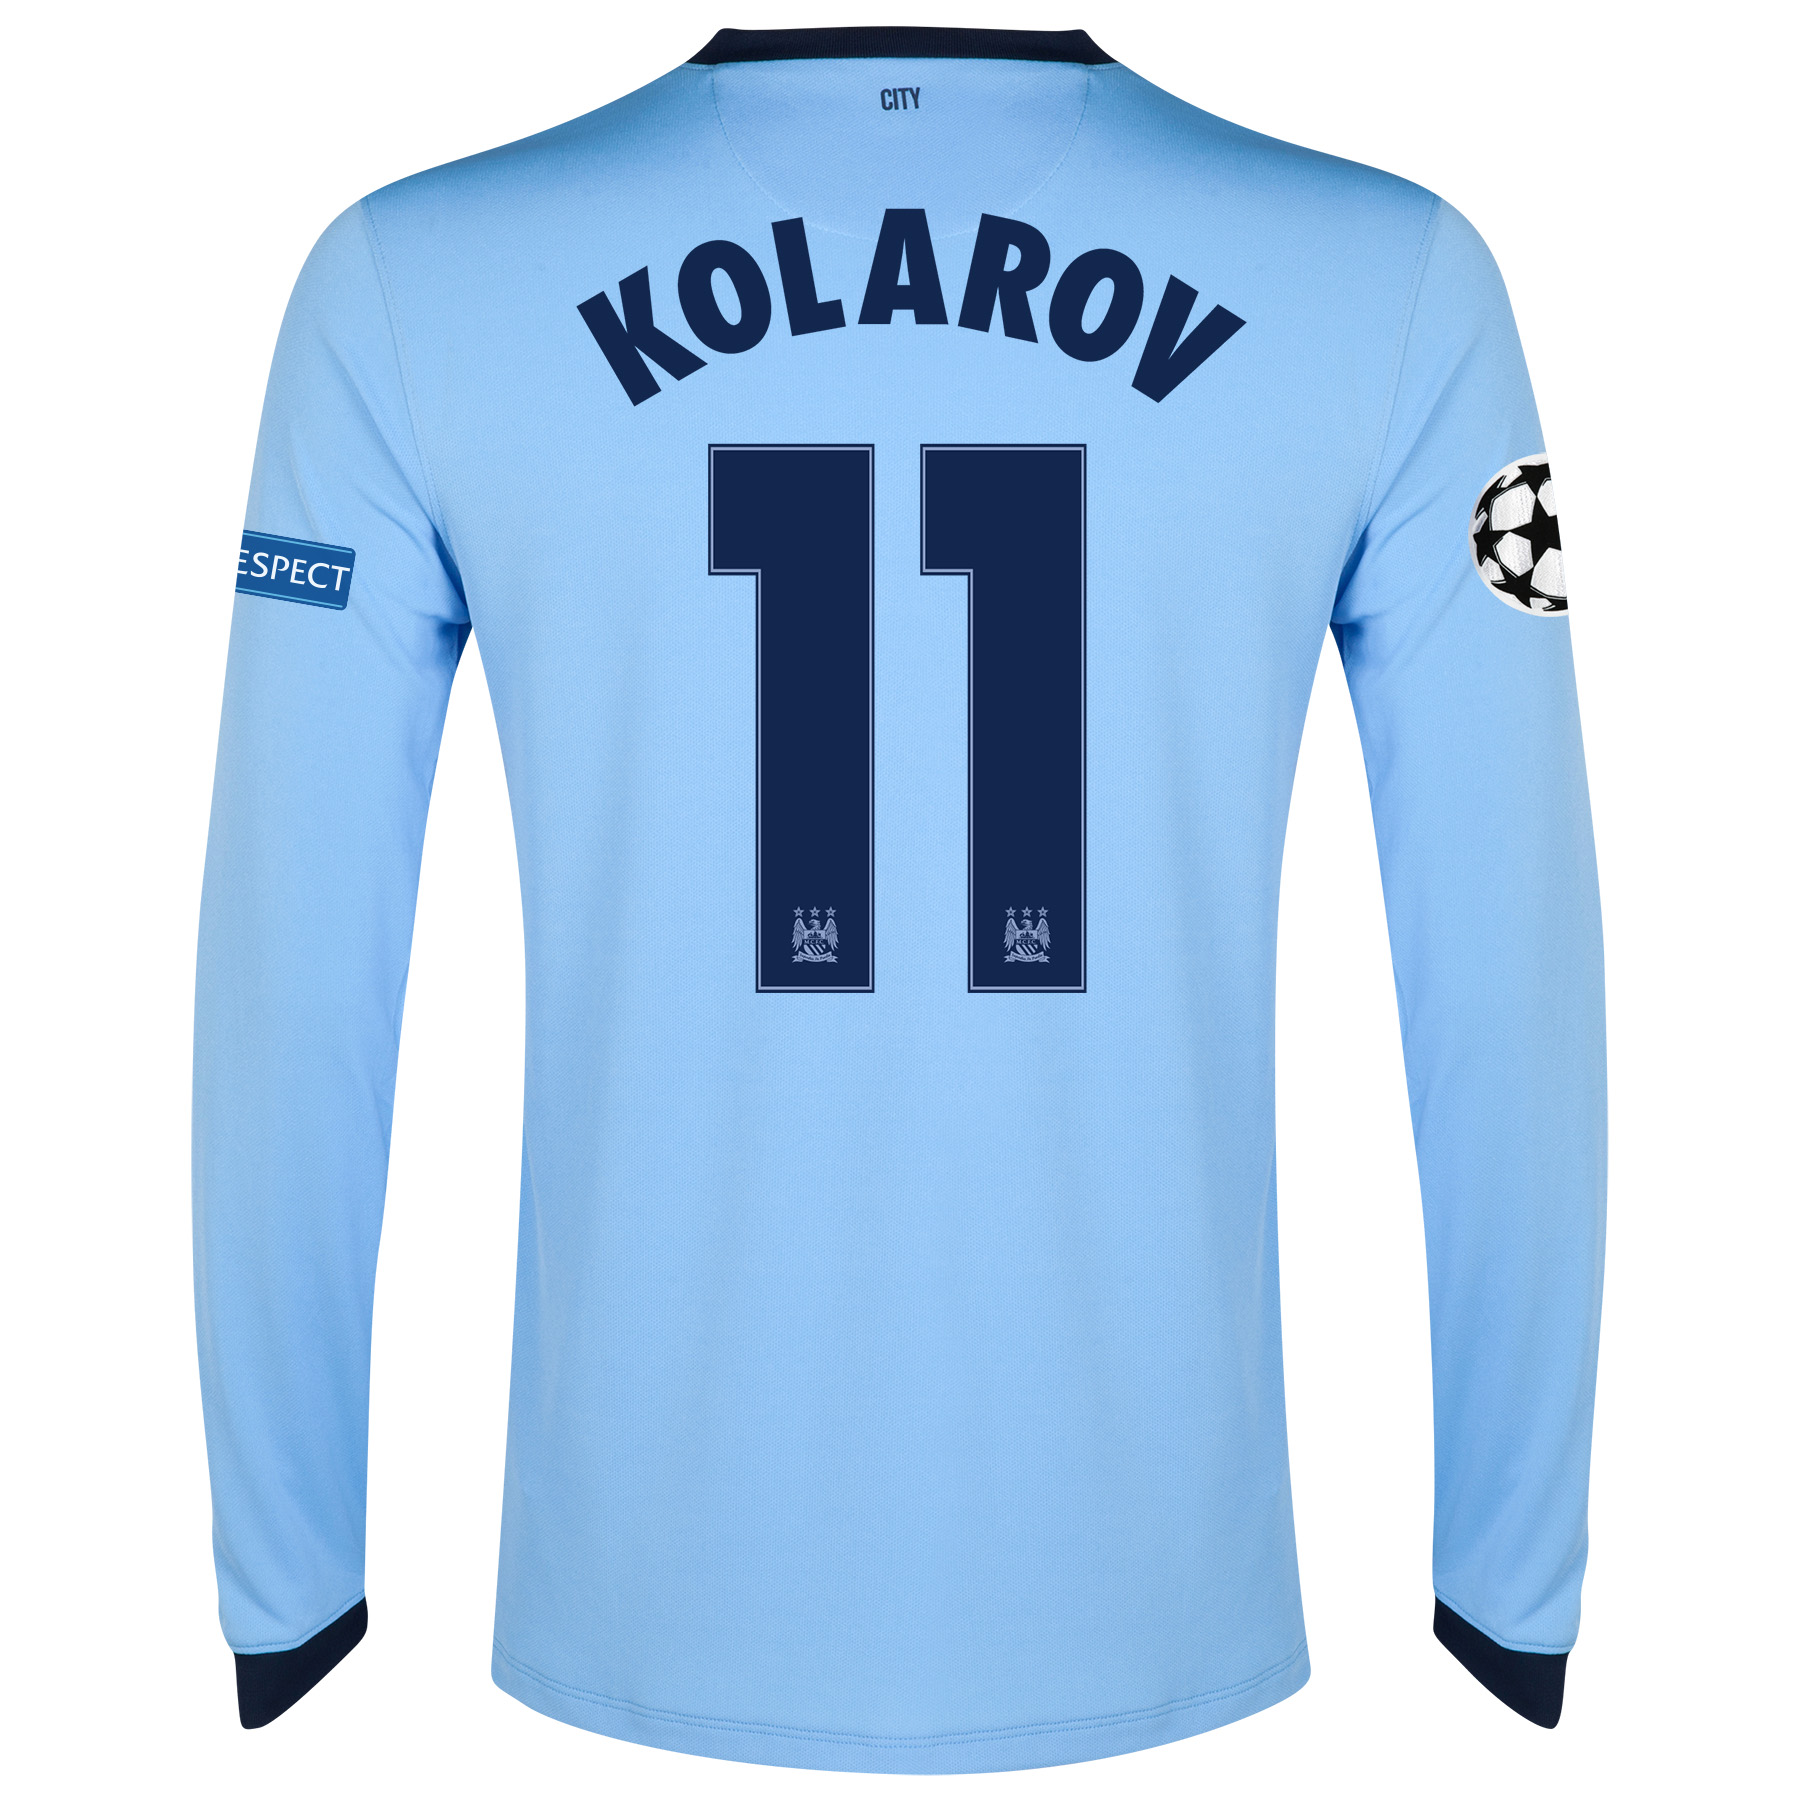 Manchester City UEFA Champions League Home Shirt 2014/15 - Long Sleeve - Kids Sky Blue with Kolarov 11 printing